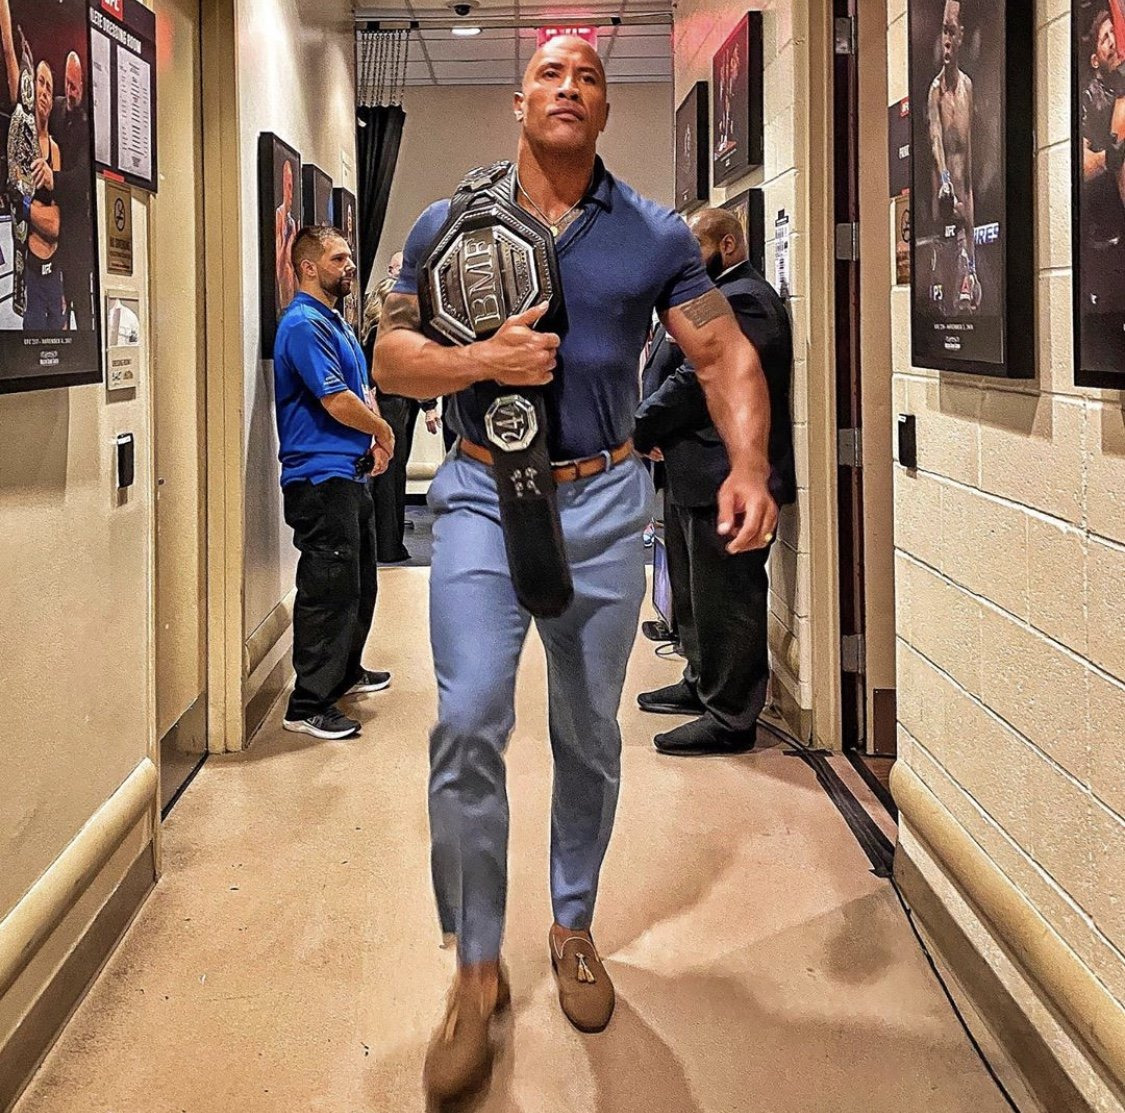 The Rock Presents UFC 'BMF' Belt in MC Classico